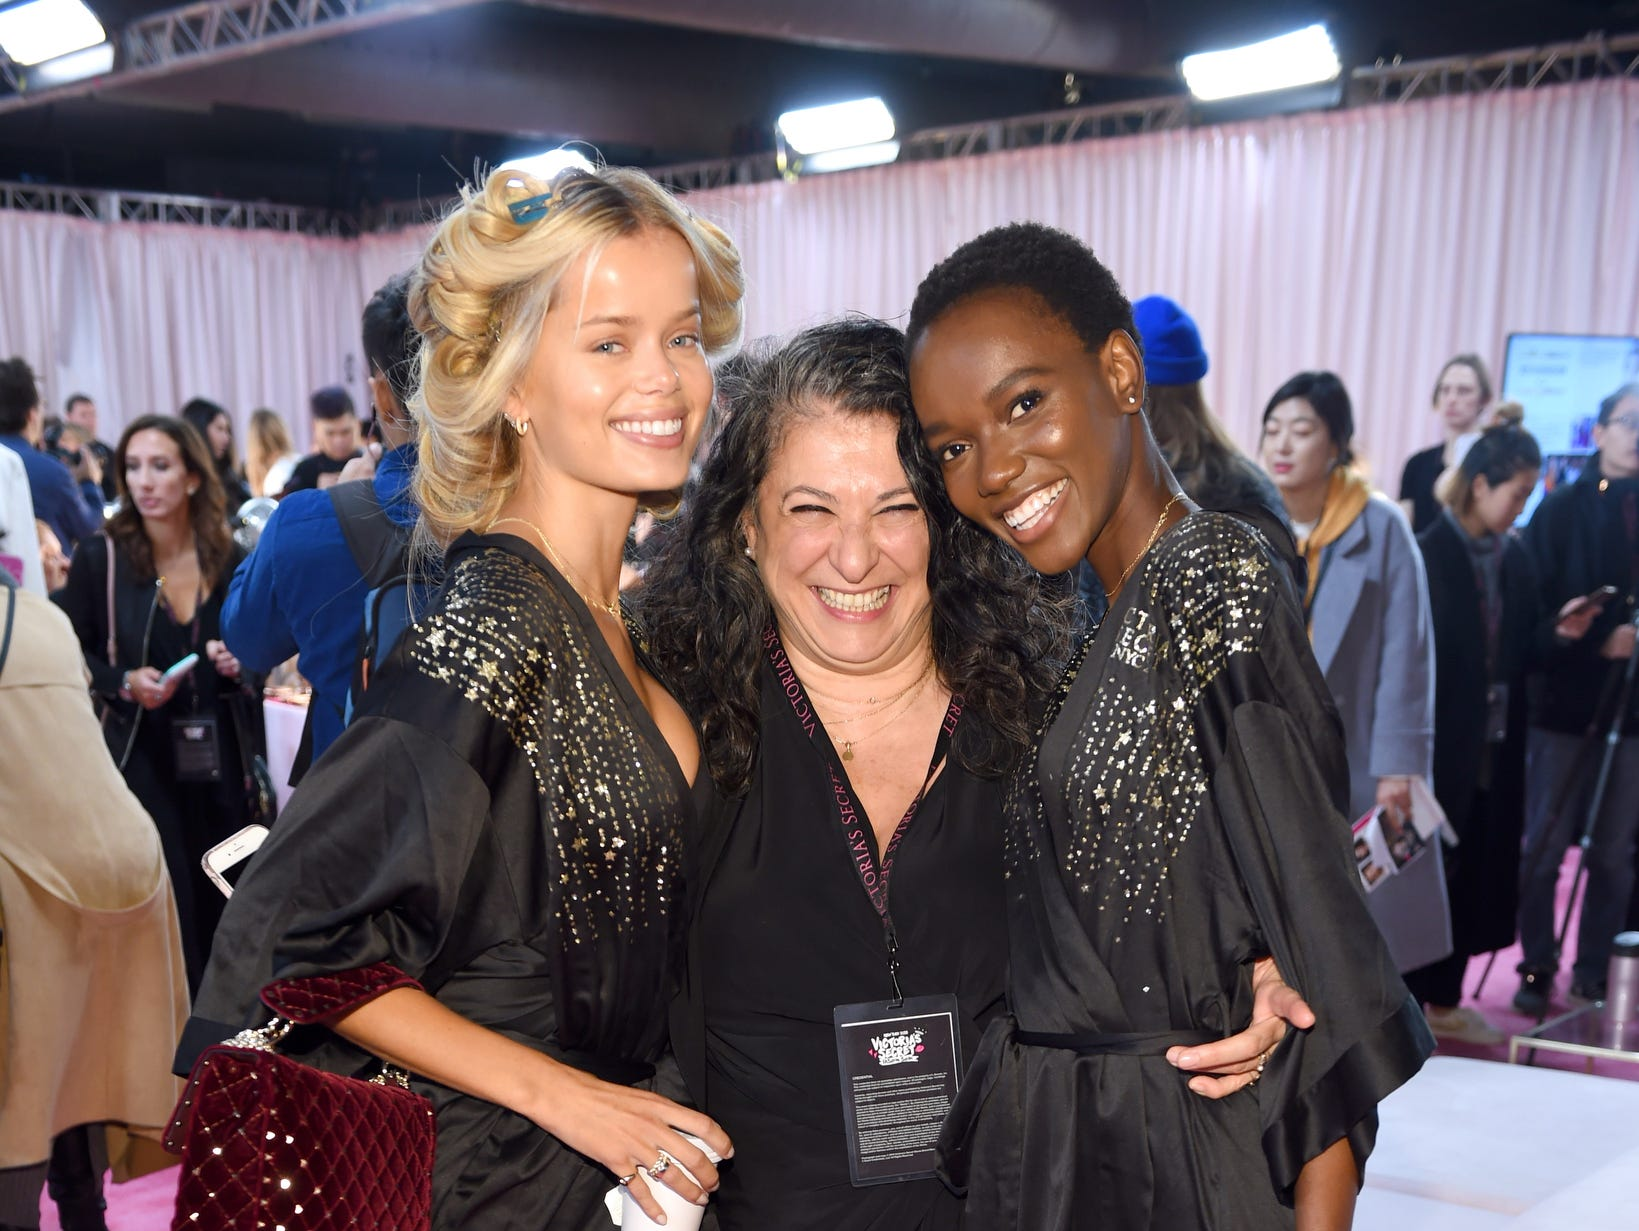 Frida Aasen, left, Sophia Neophitou and Herieth Paul get close backstage.